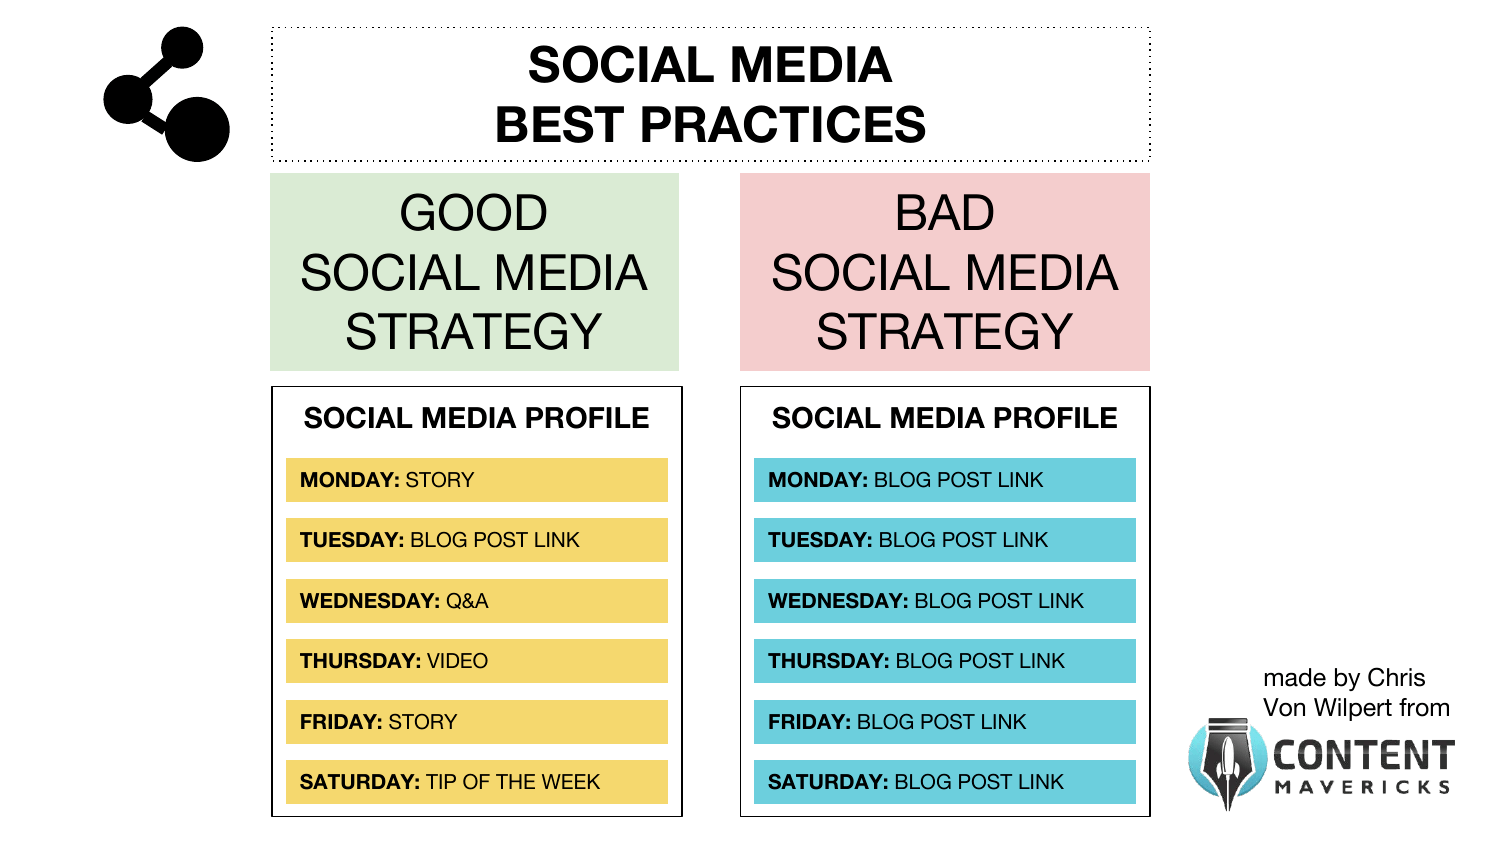 social media content distribution best practices image